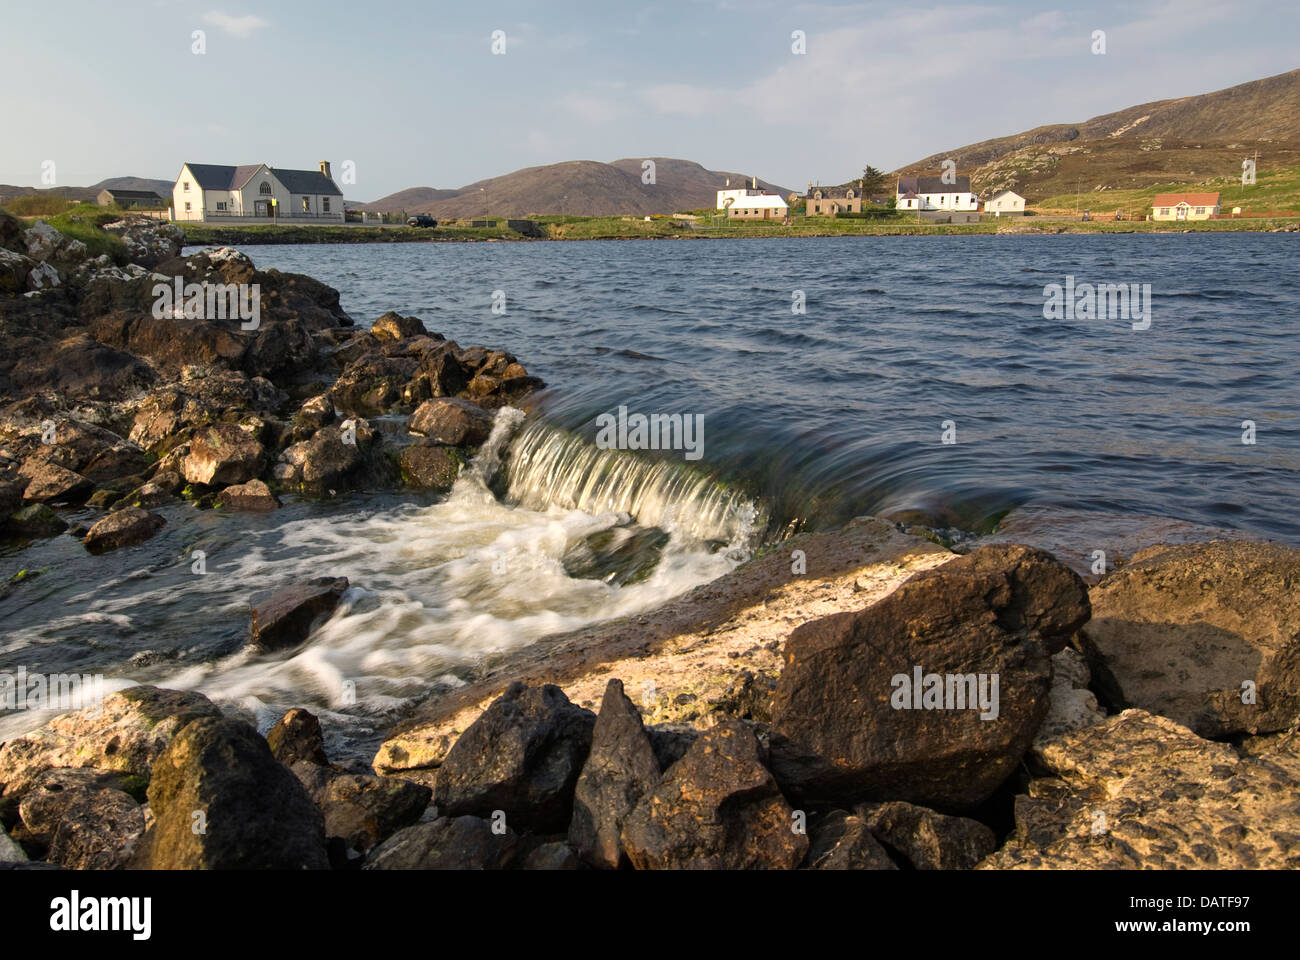 Leverburgh village, Isle of Harris, Outer Hebrides, Scotland - Stock Image